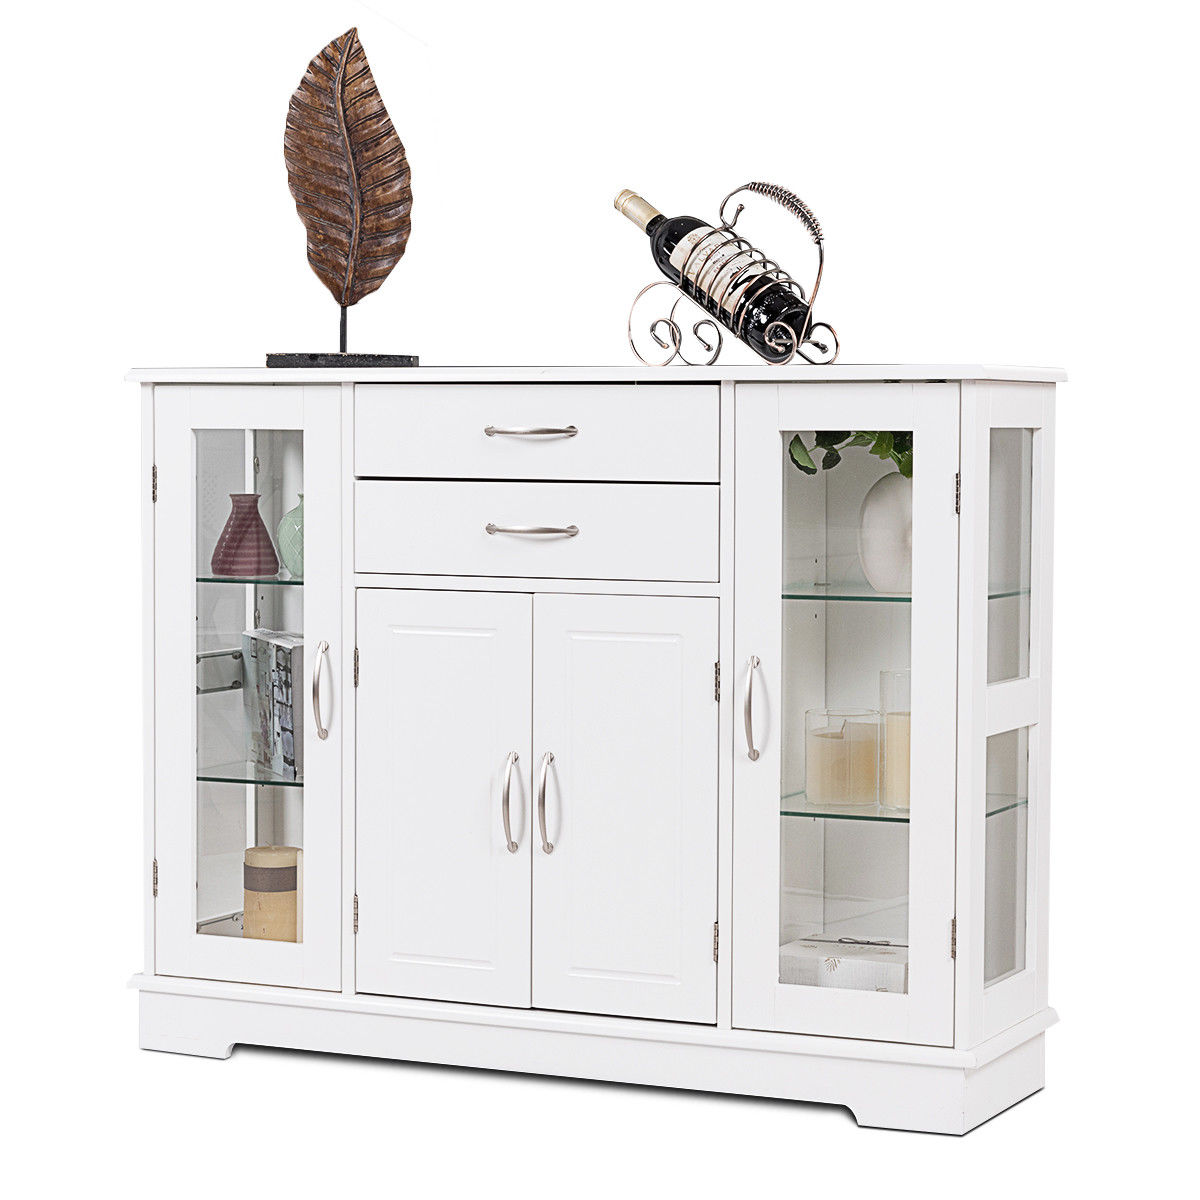 Costway Buffet Storage Cabinet Console Cupboard W/Glass Door Drawers Kitchen Dining Room